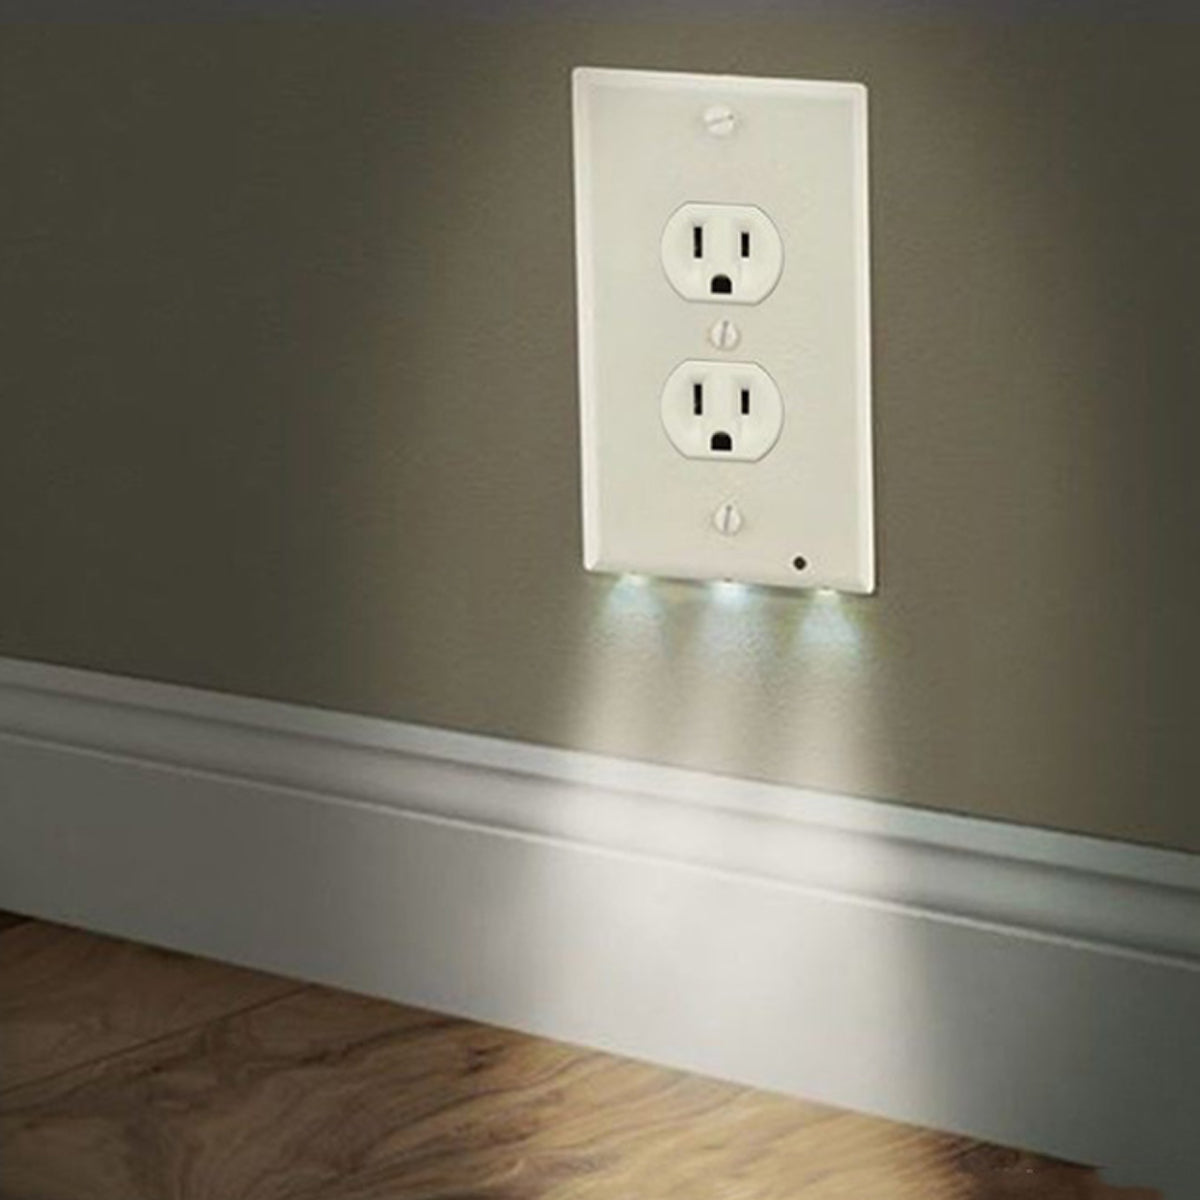 shopify-Path Lighter Auto Motion Wall Plate LED Light  2- PACK-7